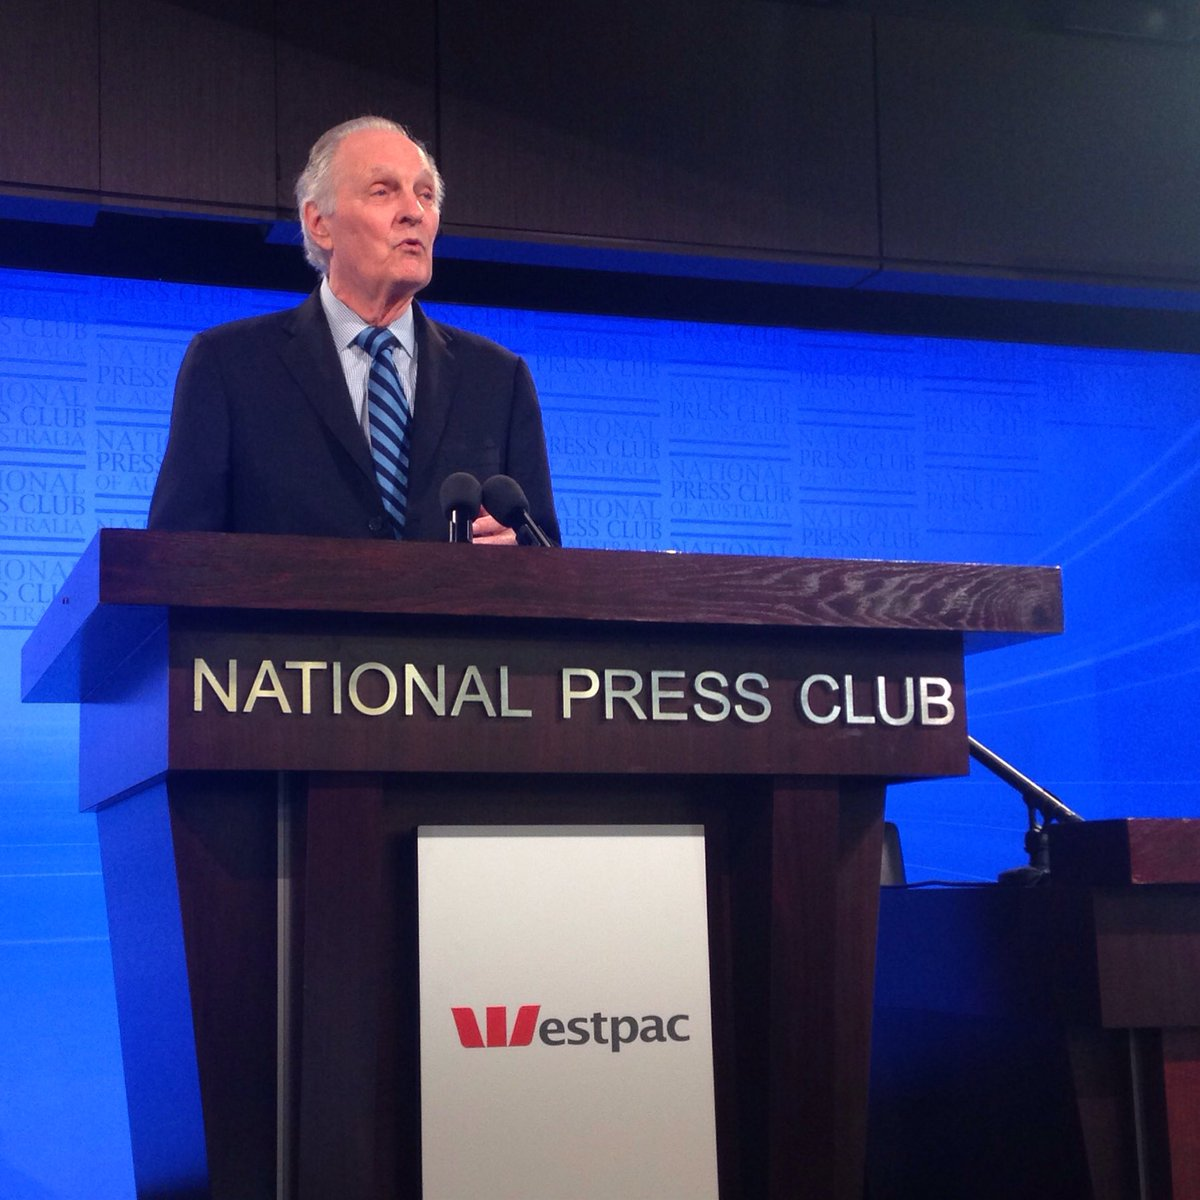 Alan Alda, Actor and Science Advocate, Addressing the #NPC speaking on 'Science Belongs to All of Us' live on #ABC https://t.co/IPCXj3QvWY